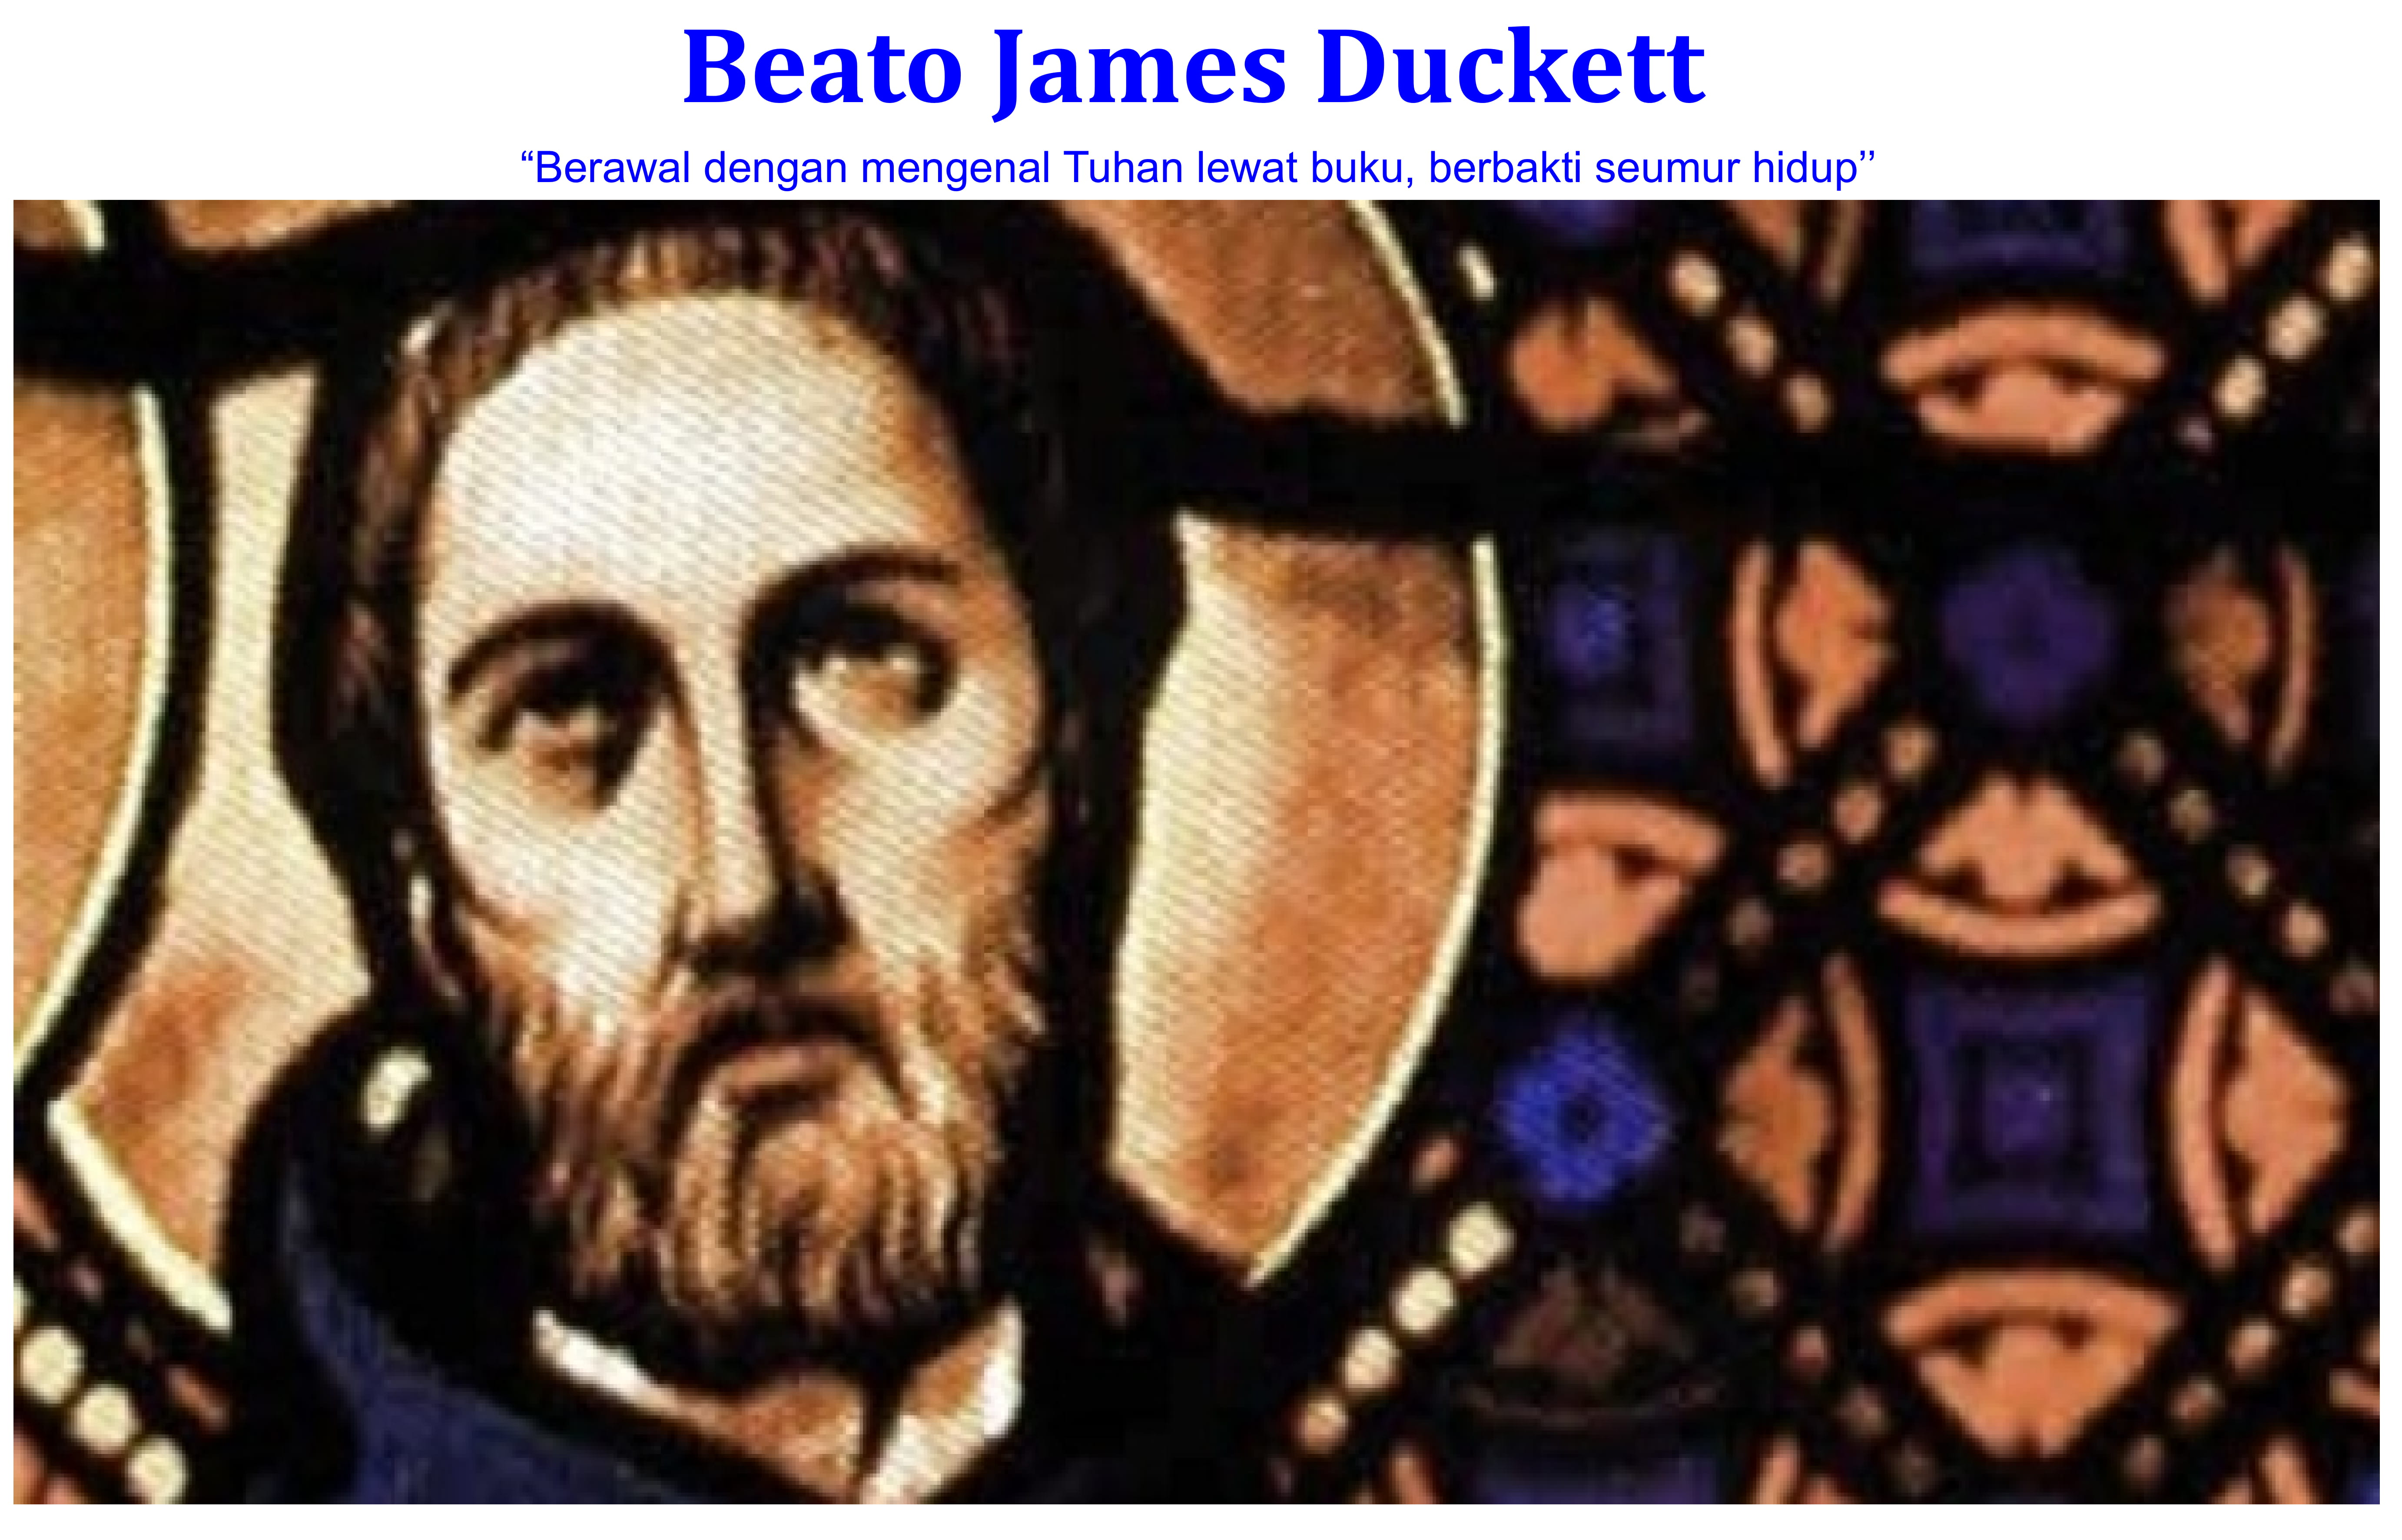 Beato James Duckett